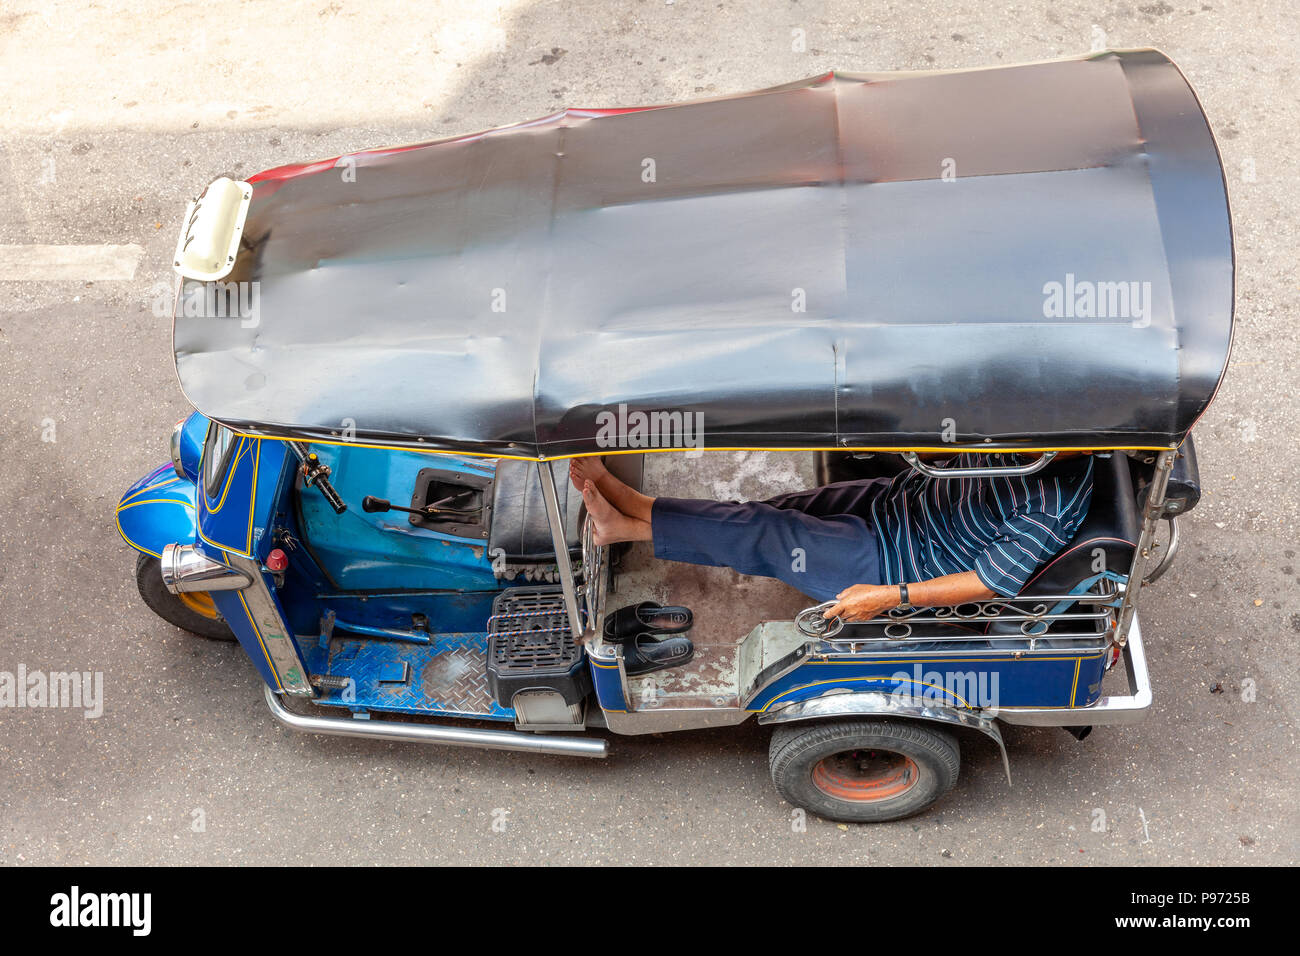 A tuk-tuk driver waits for customers on the street of Chiang Mai, Thailand. - Stock Image